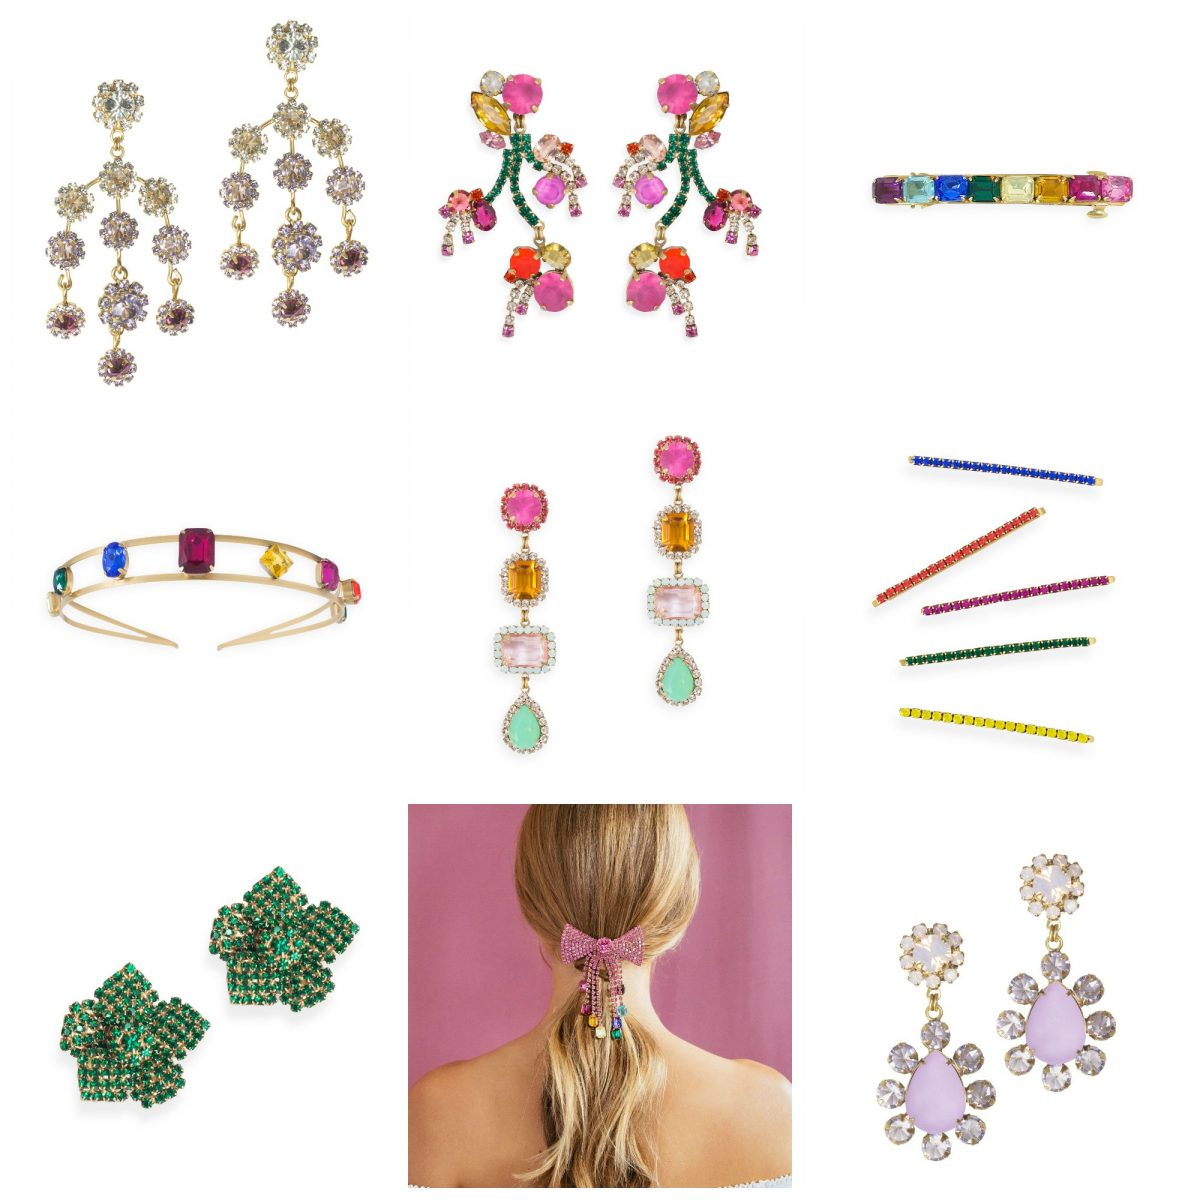 Loren Hope Jewelry includes colorful and feminine statement earrings and hair accessories